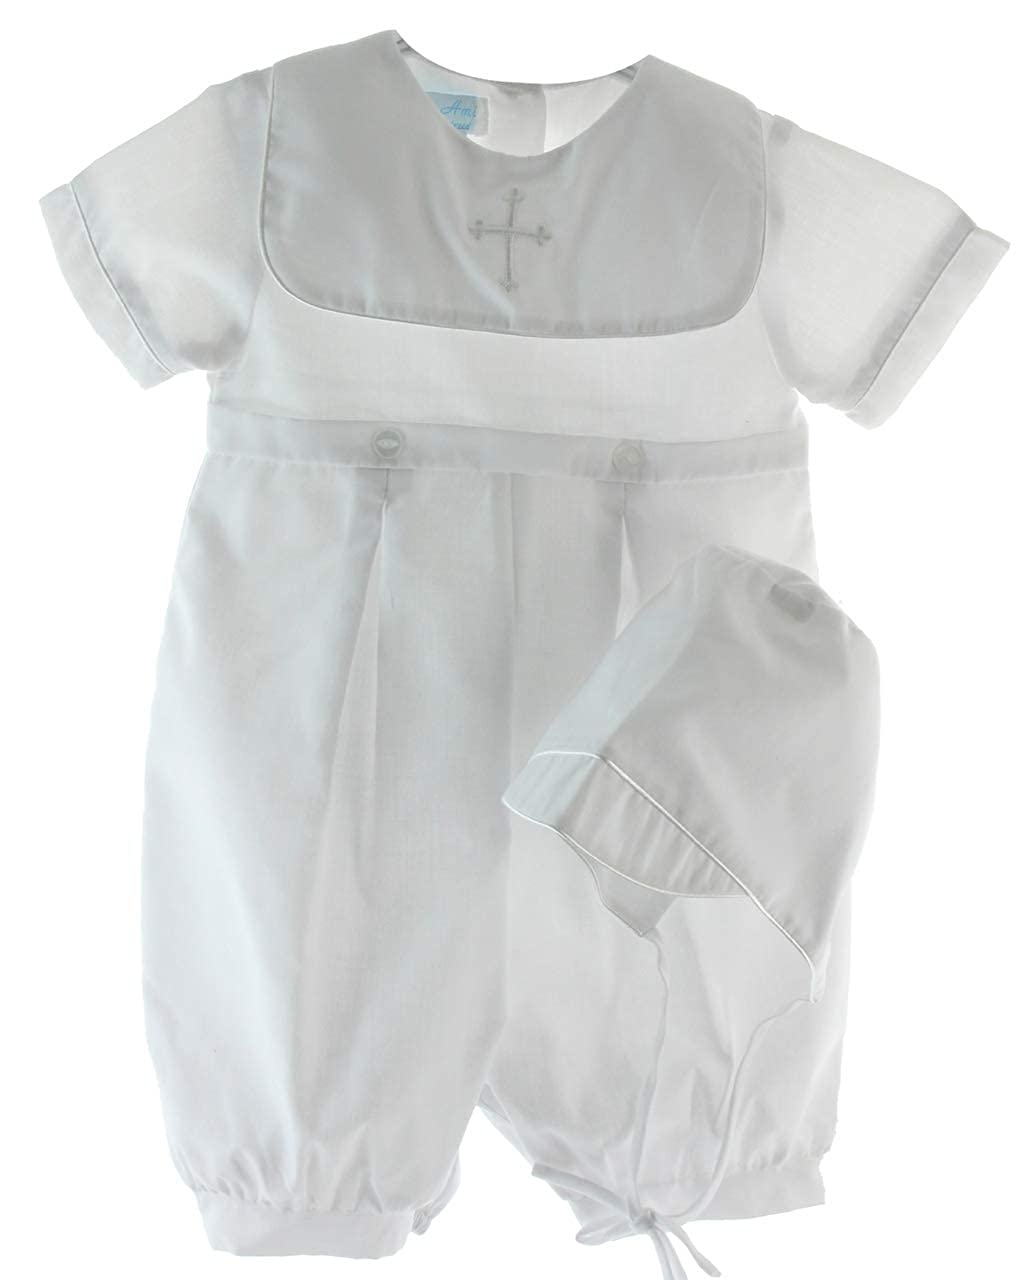 Boys White Christening Outfit Square Cross Collar with Bonnet